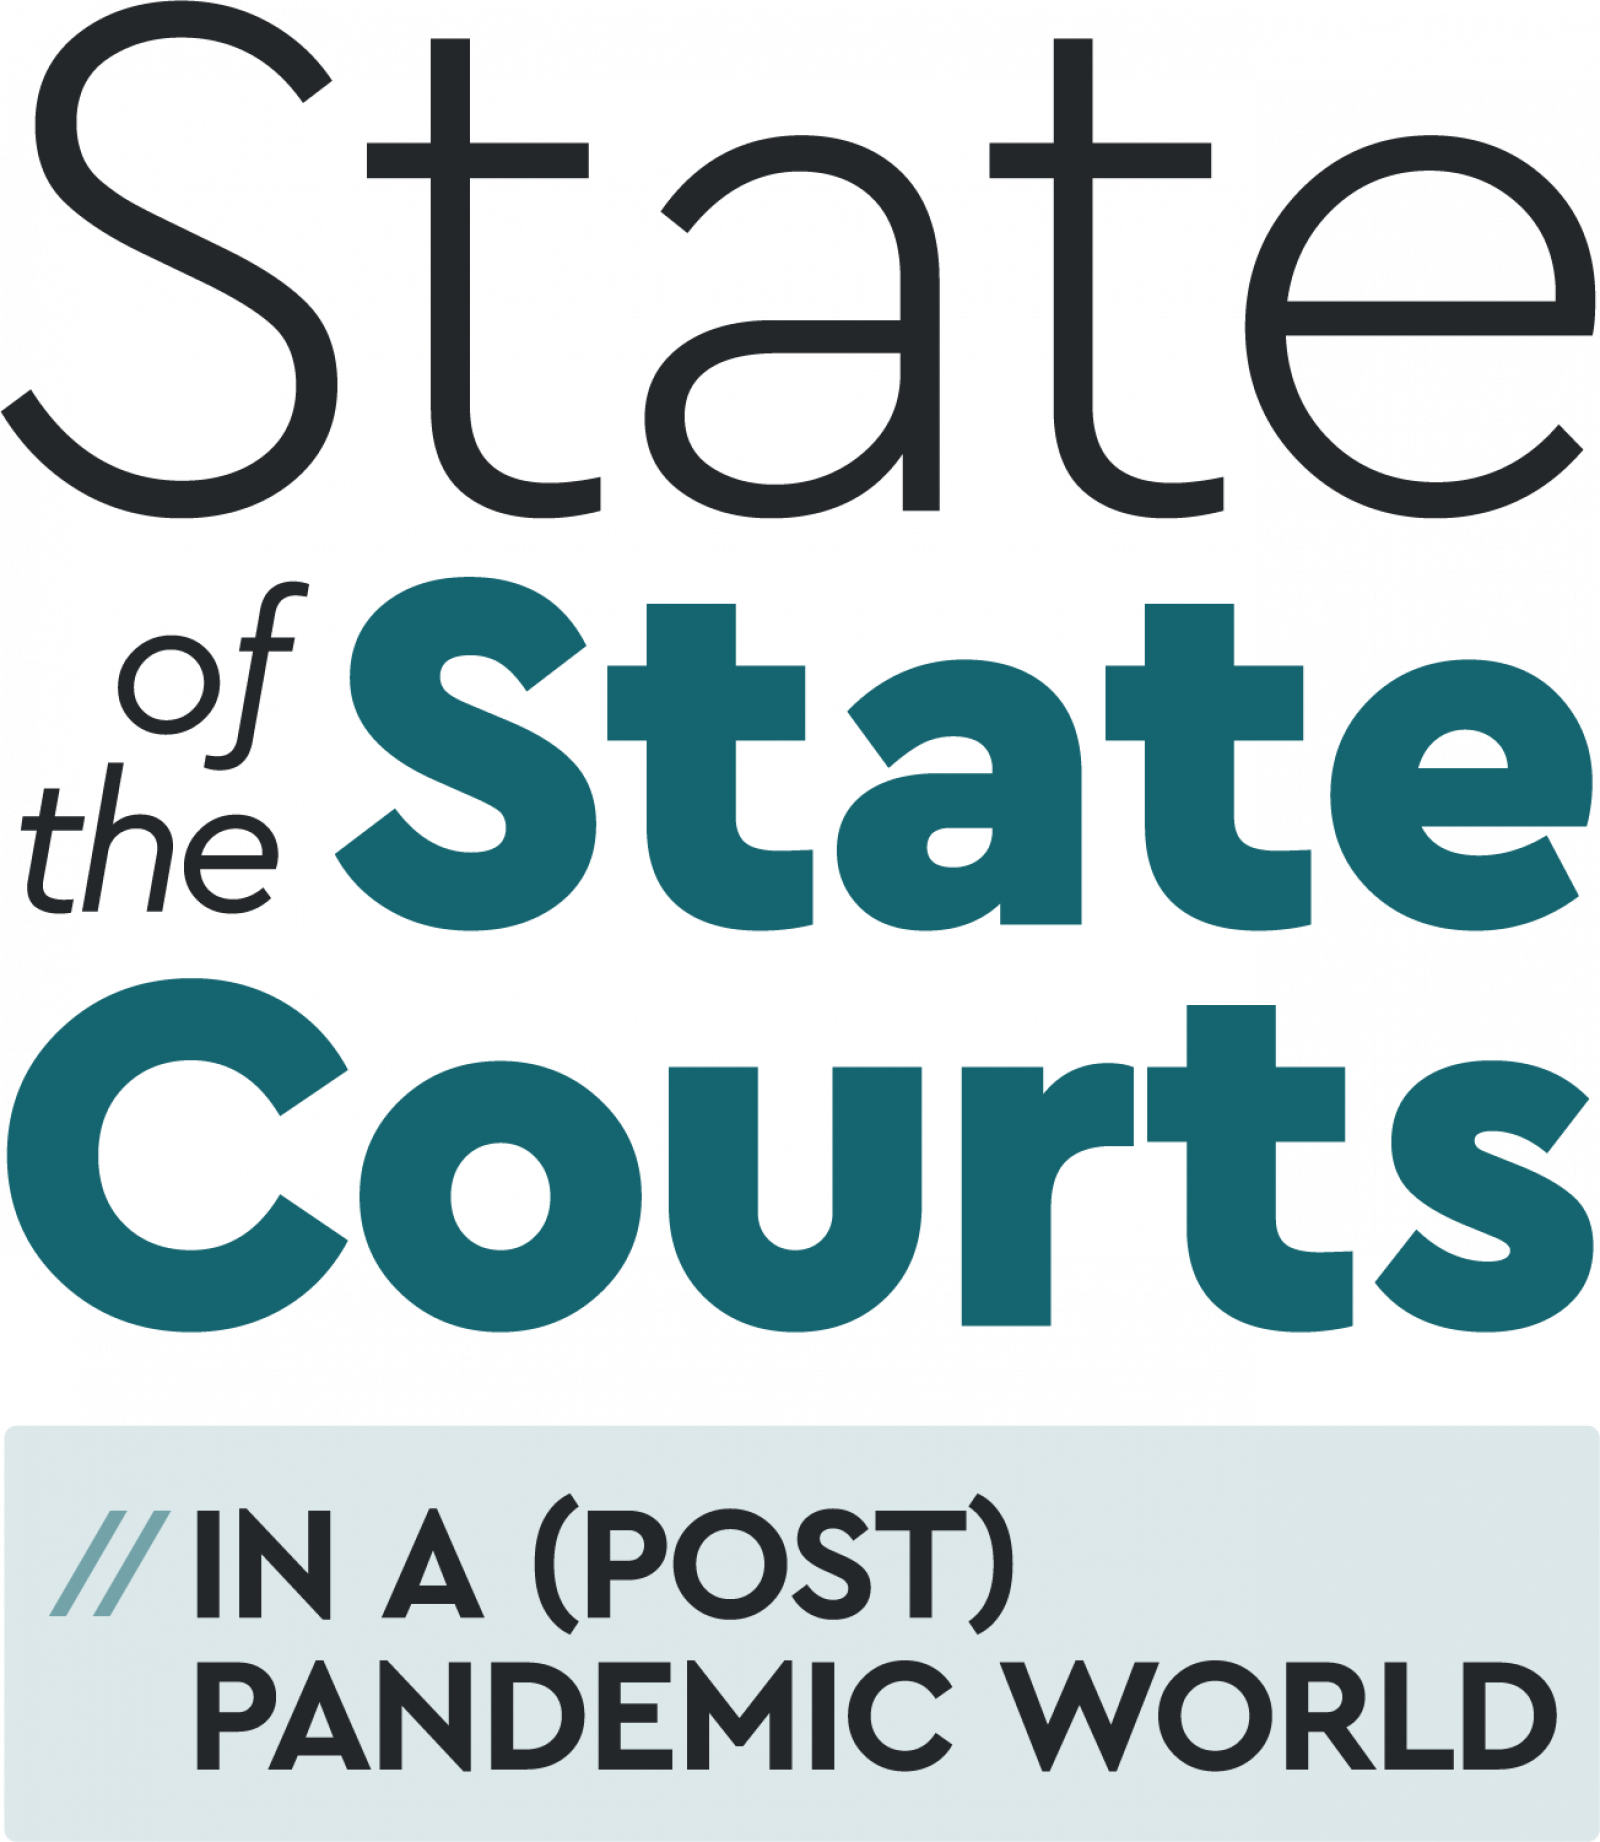 State of State Courts Pandemic banner image